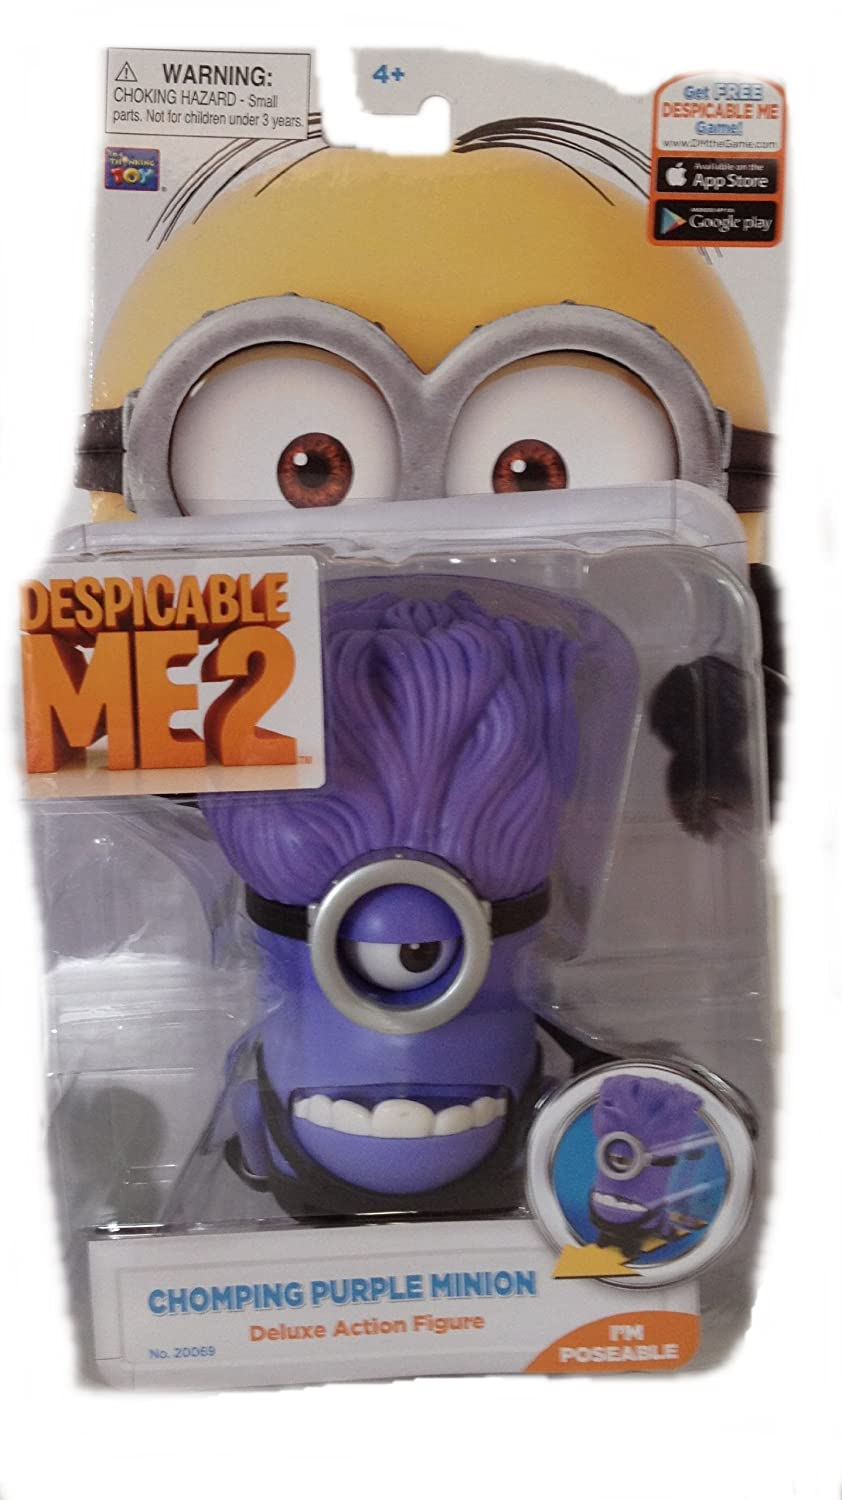 Despicable Me 2 - Deluxe Action Figure - Chomping lila Minion